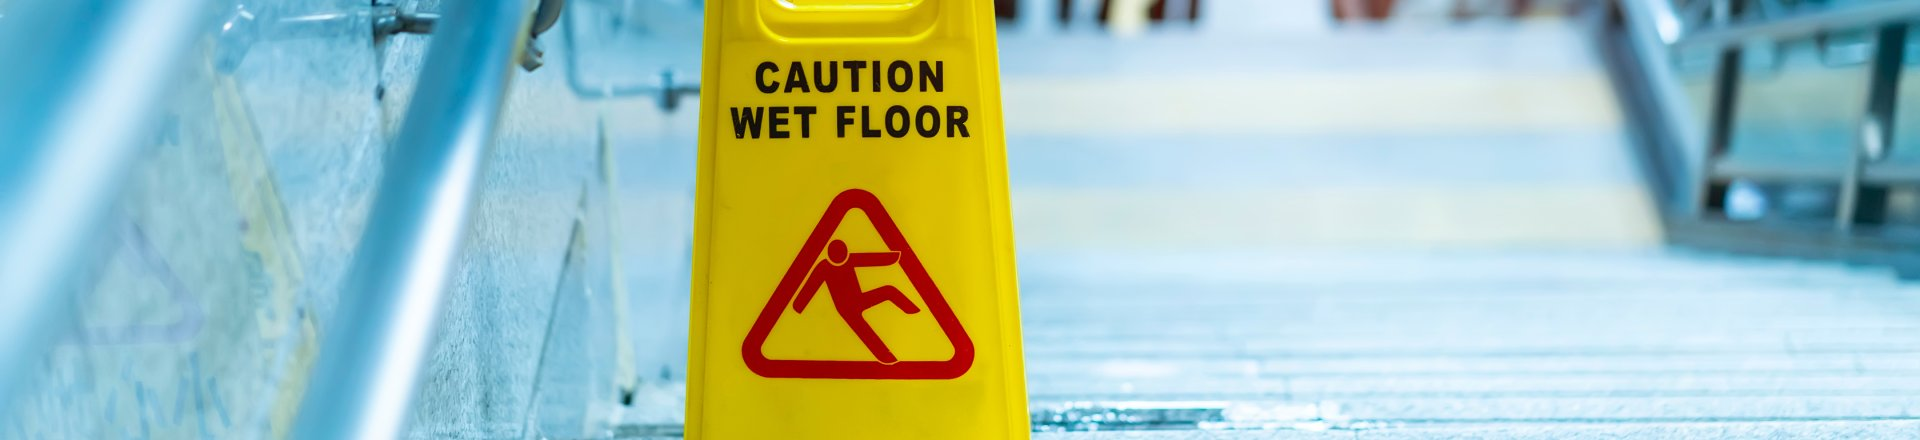 Caution Wet Floor Warning, Tampa Premises Liability Lawyer